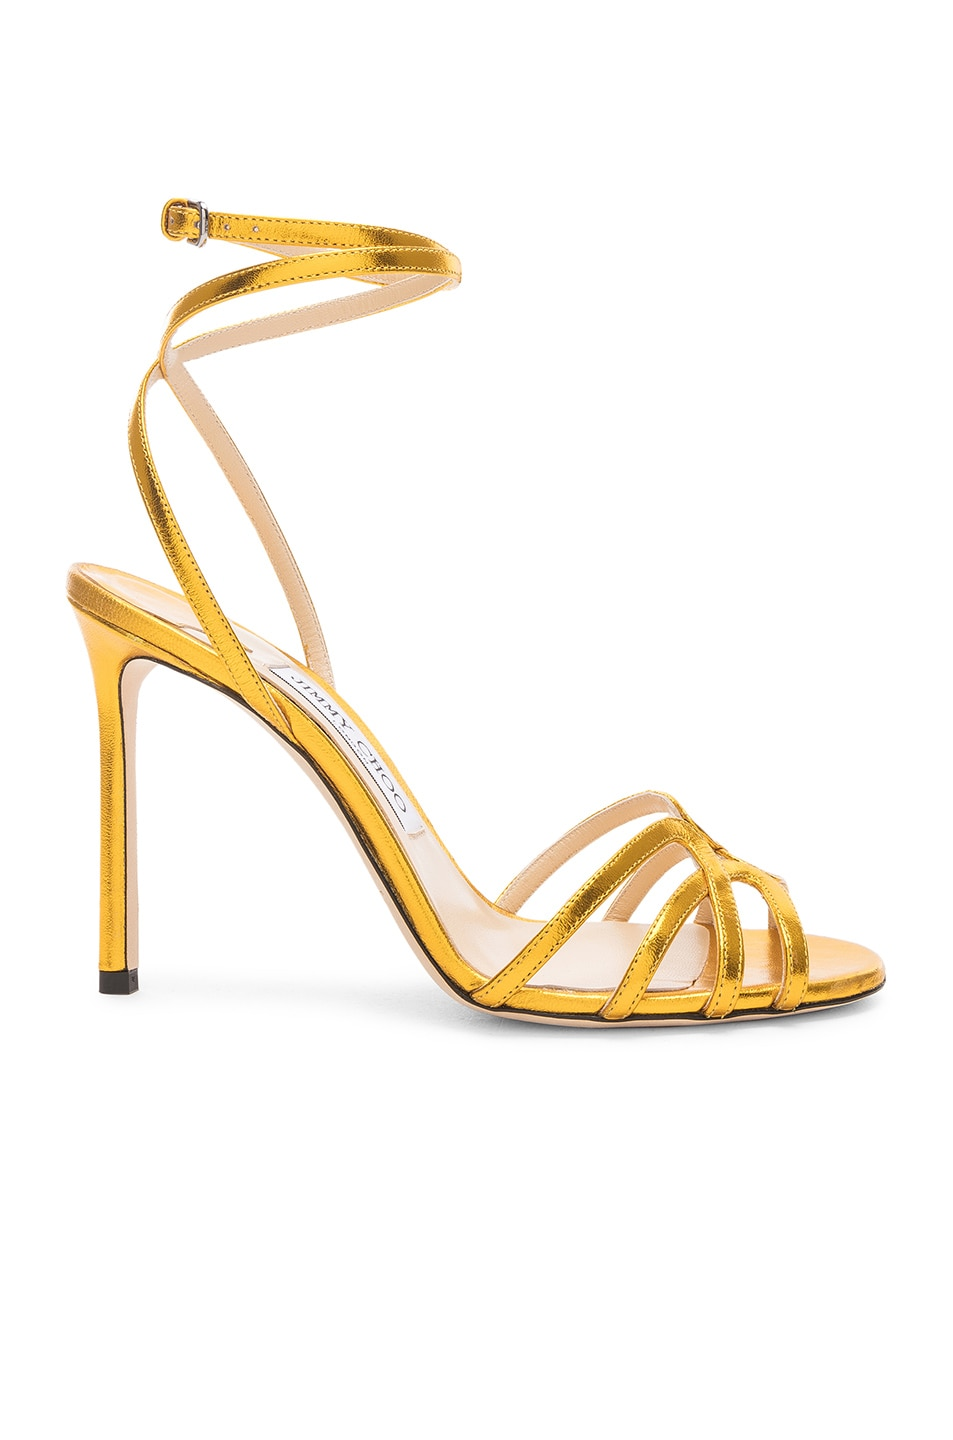 Image 1 of Jimmy Choo Leather Mimi 100 Sandal in Saffron